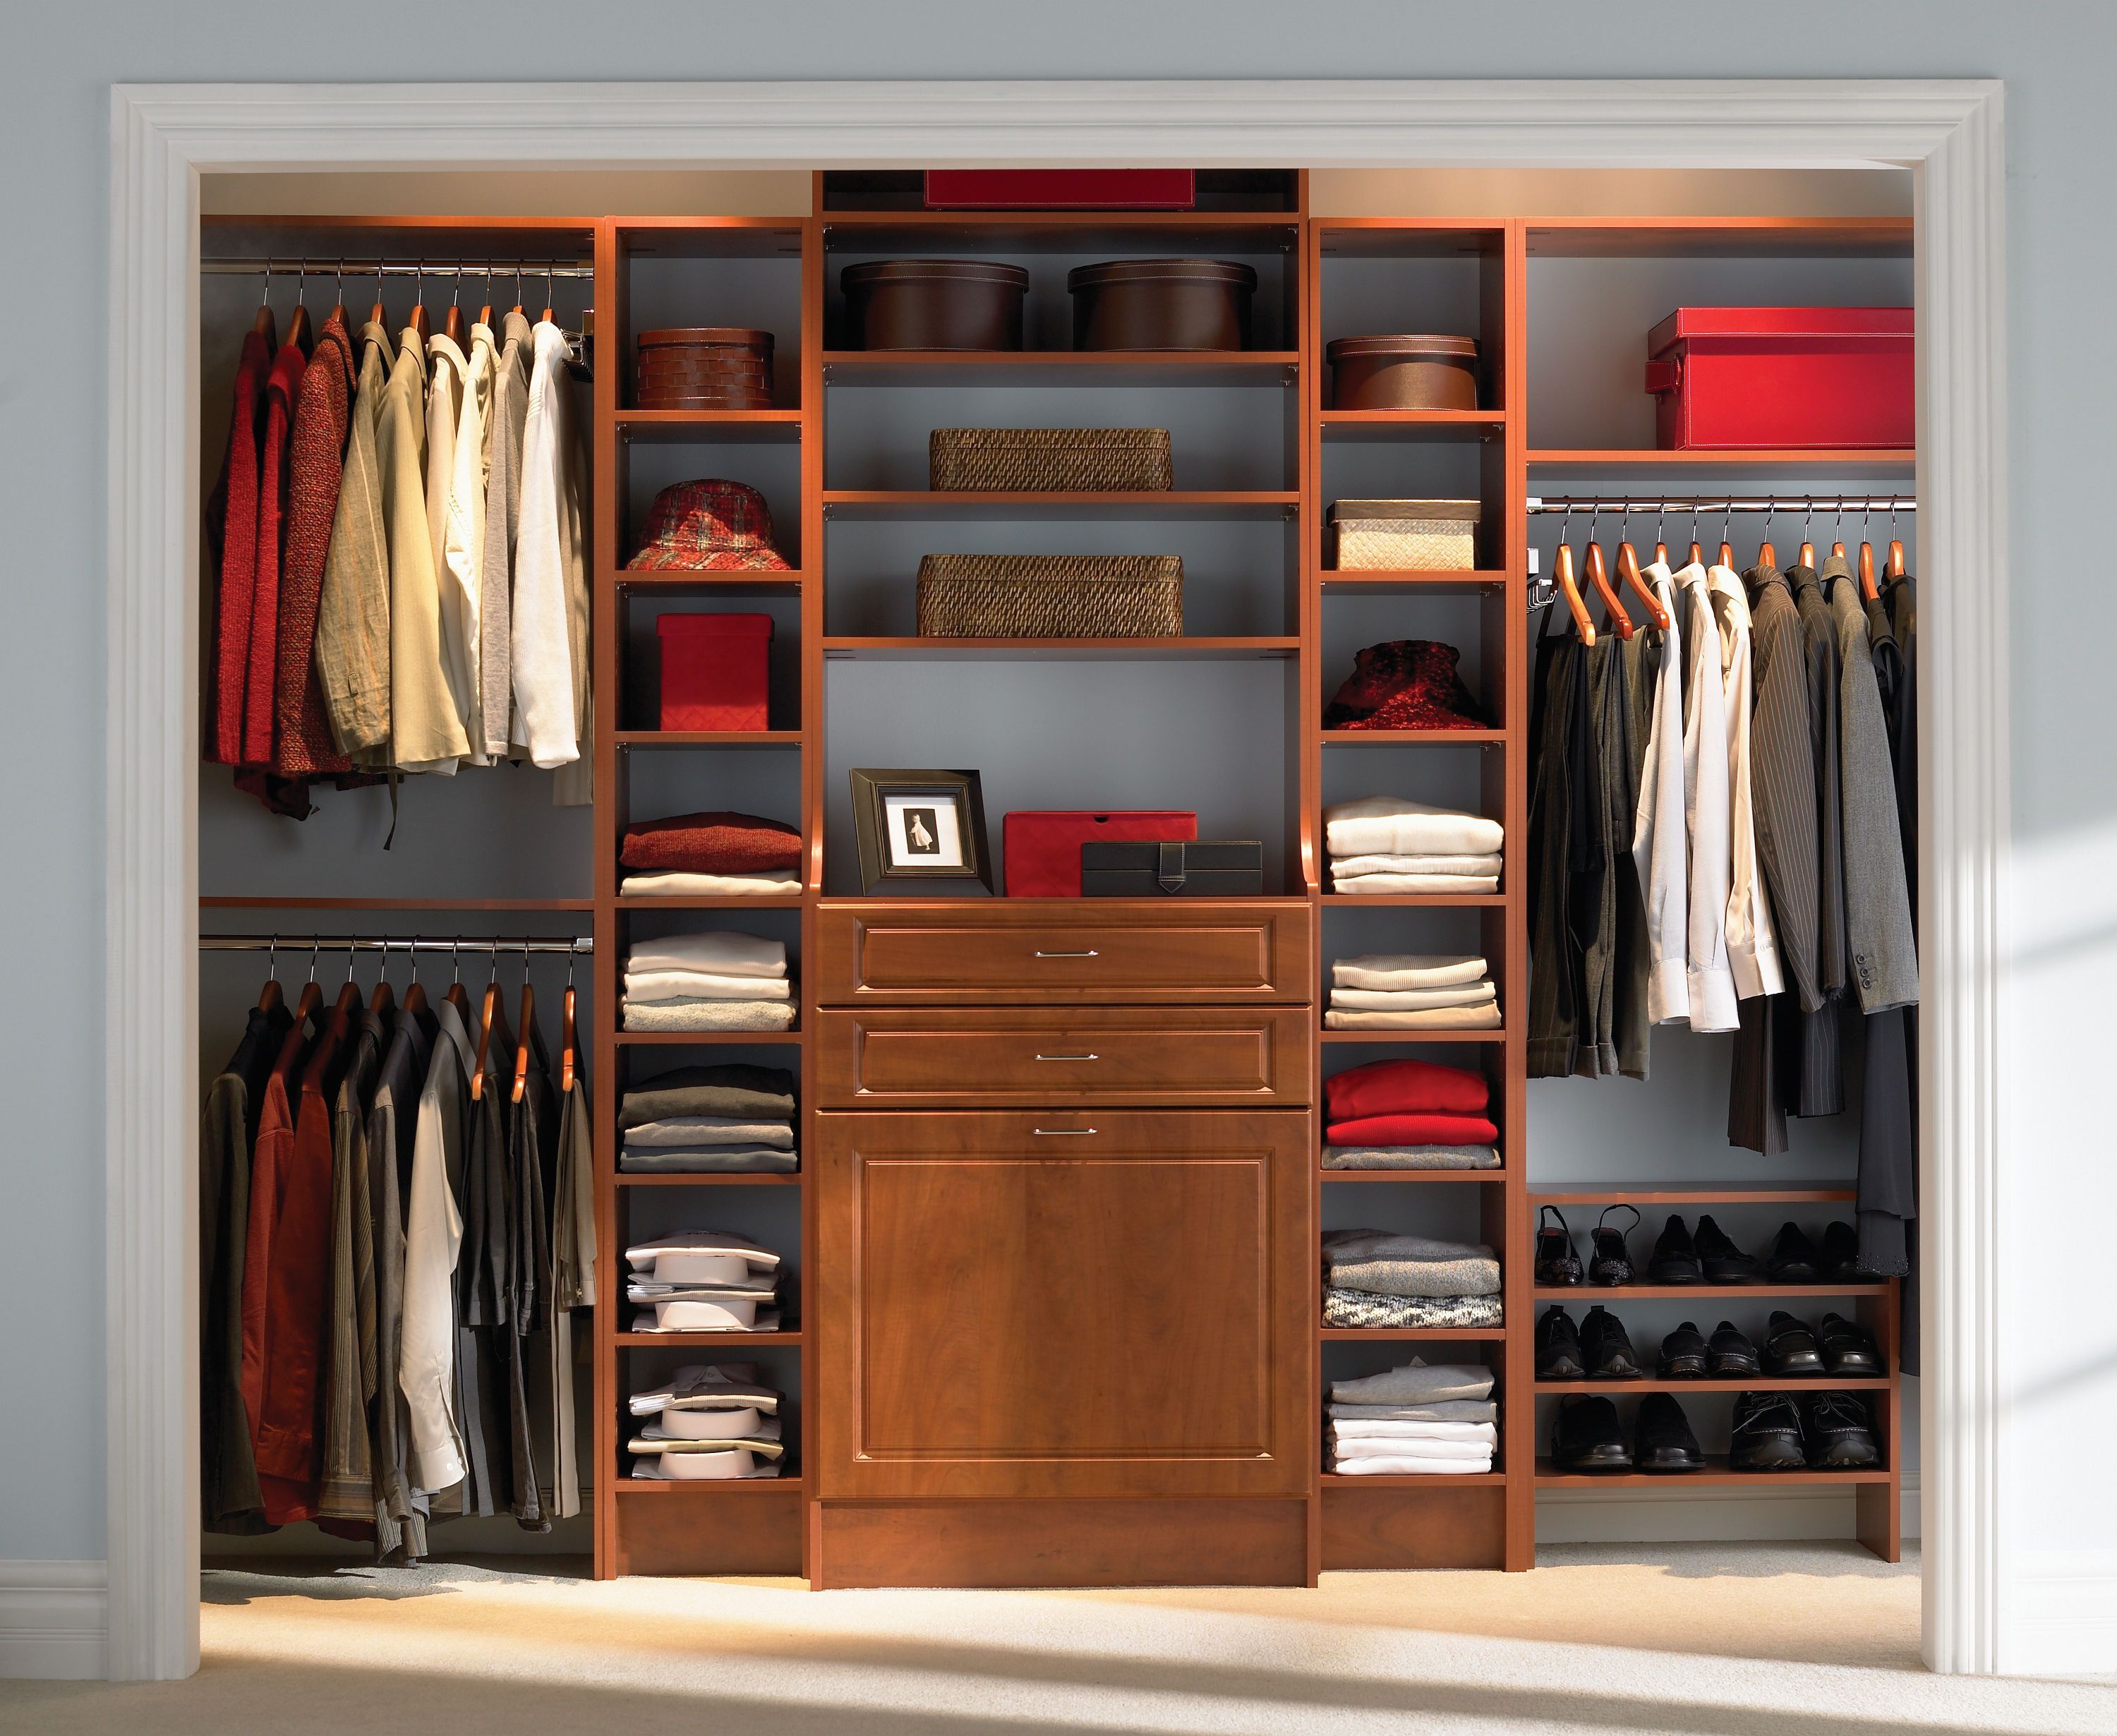 Use Solid Oak Material for Old Fashioned Closet Design Ideas with Brown Drawers and Shelves